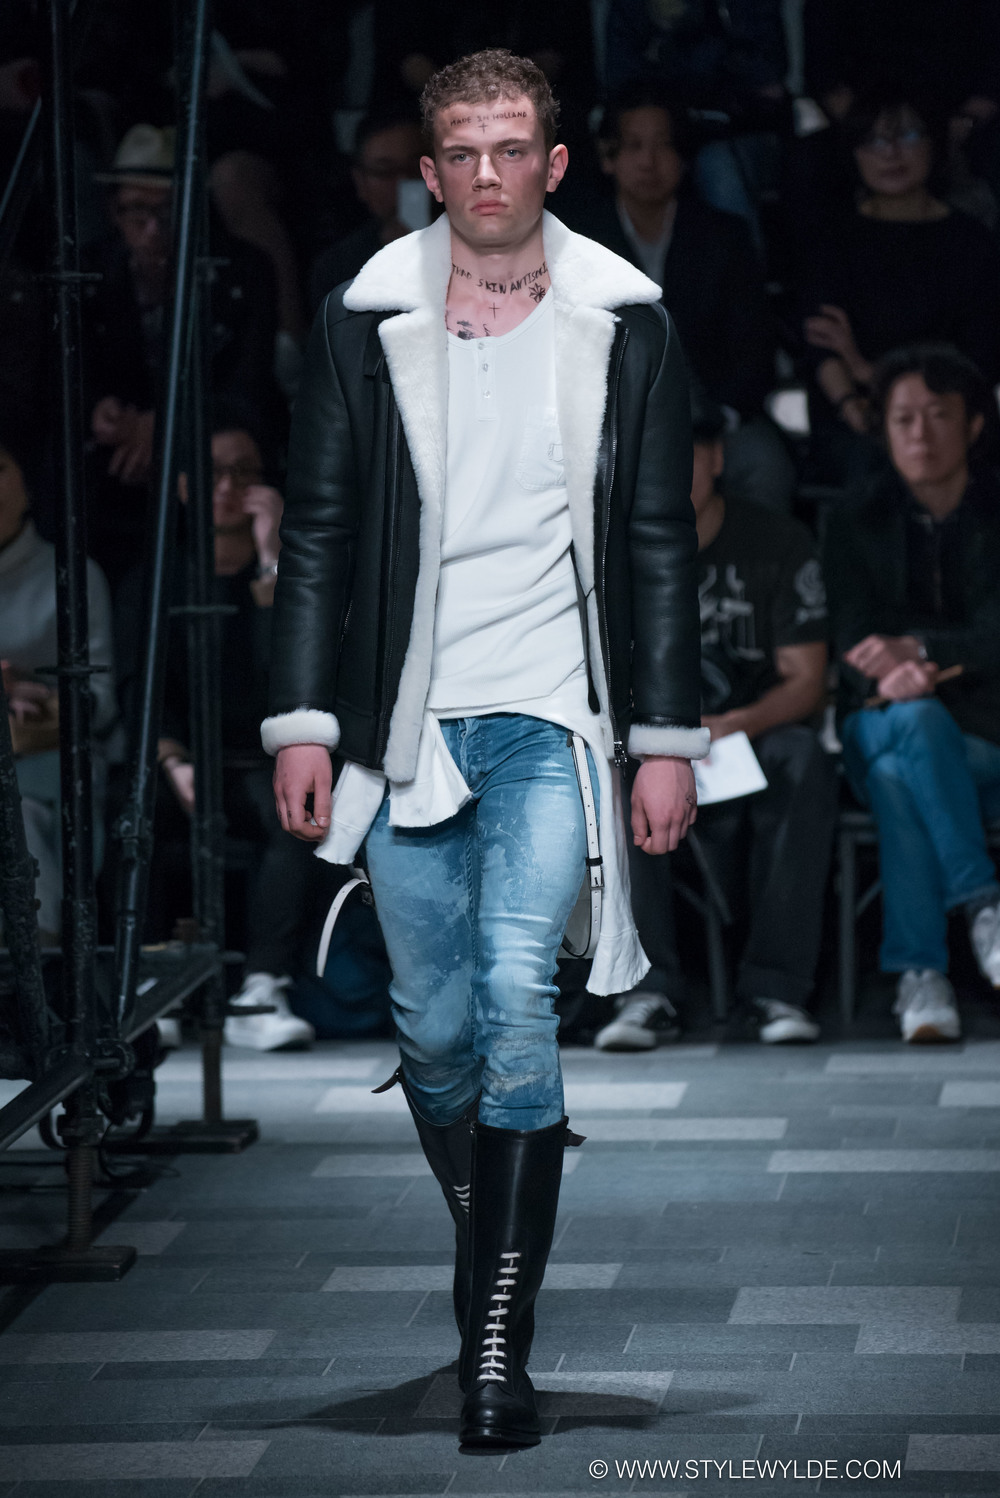 stylewylde_5351_pour_les_hommes_fw_2016-17.jpg